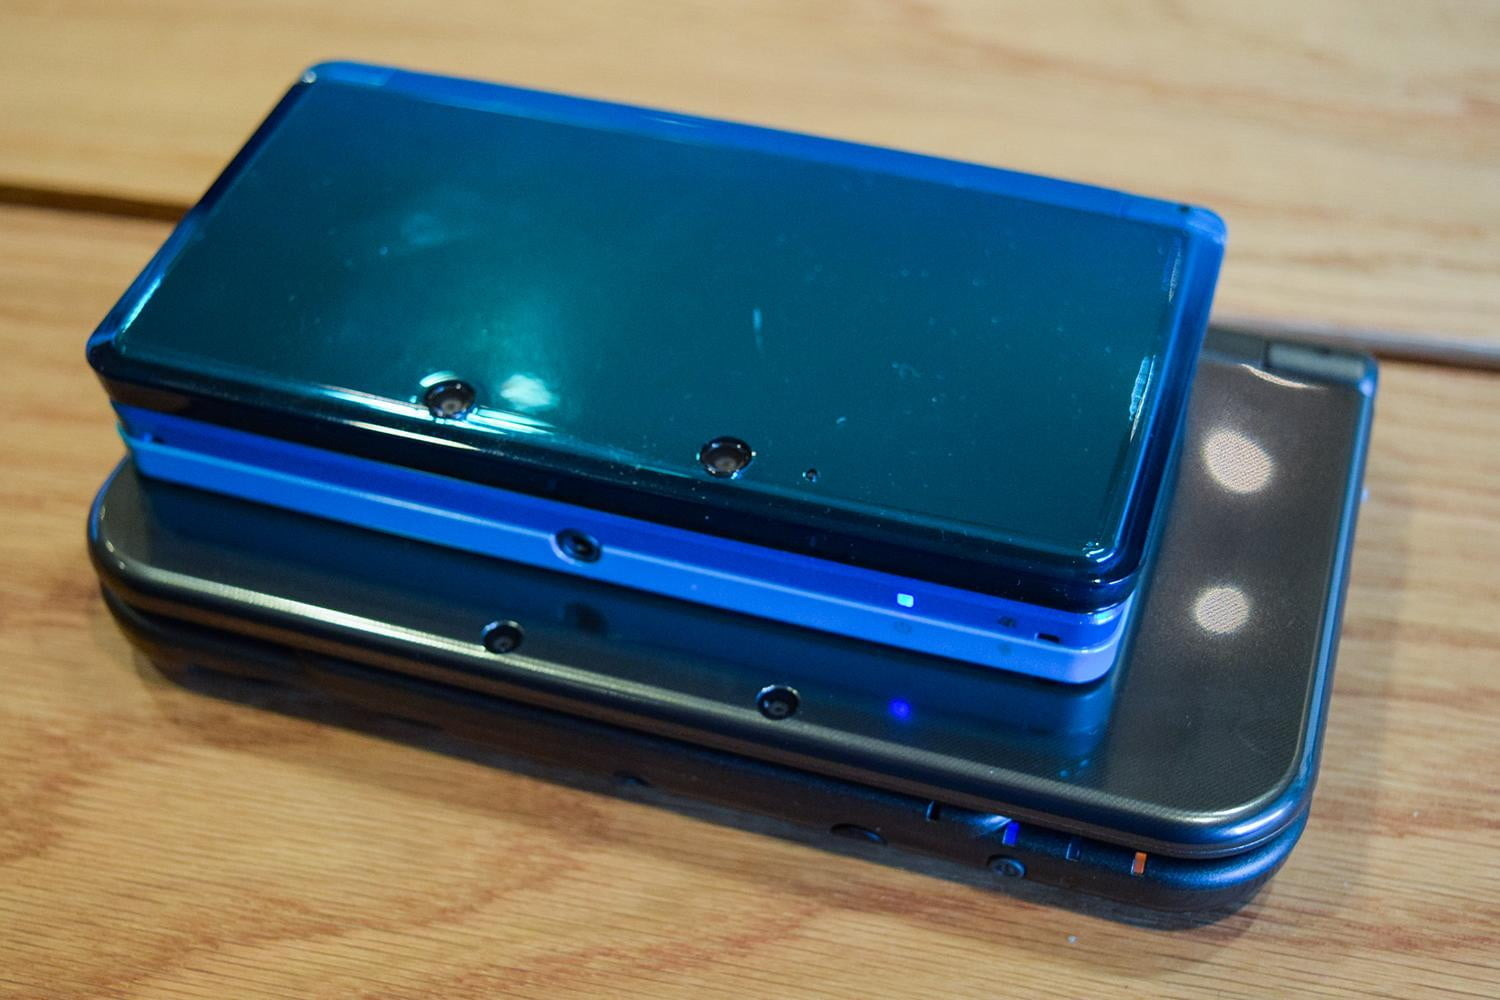 Nintendo 3ds Xl Hands On 5